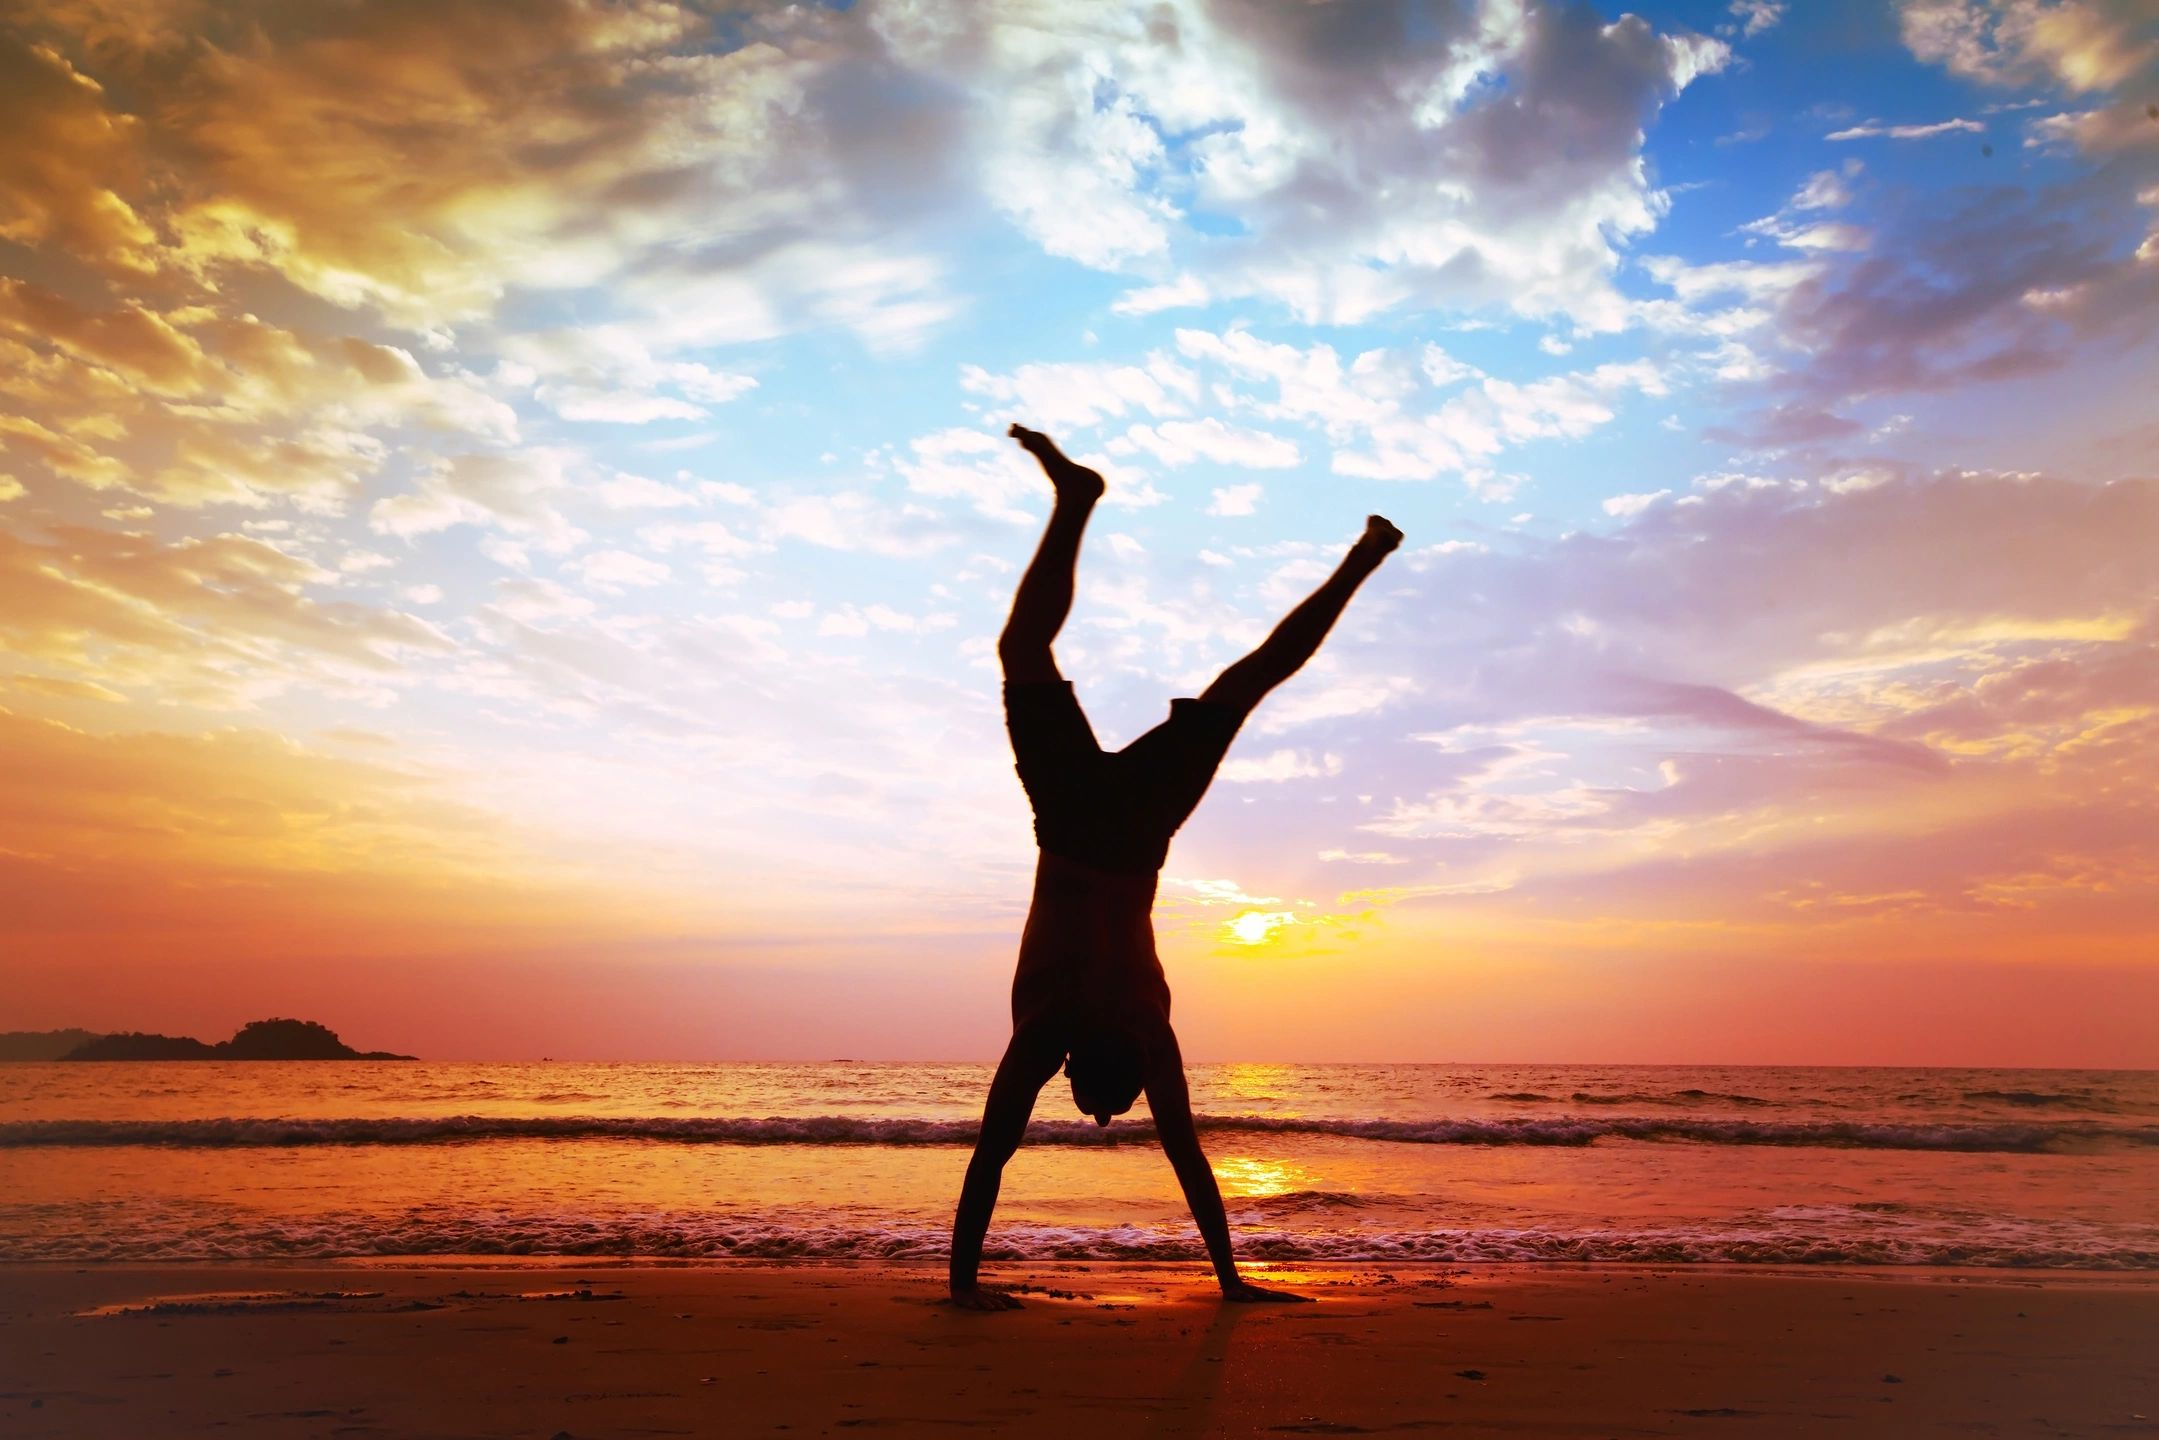 Cartwheels are possible without perpetuating factors that cause chronic pain!